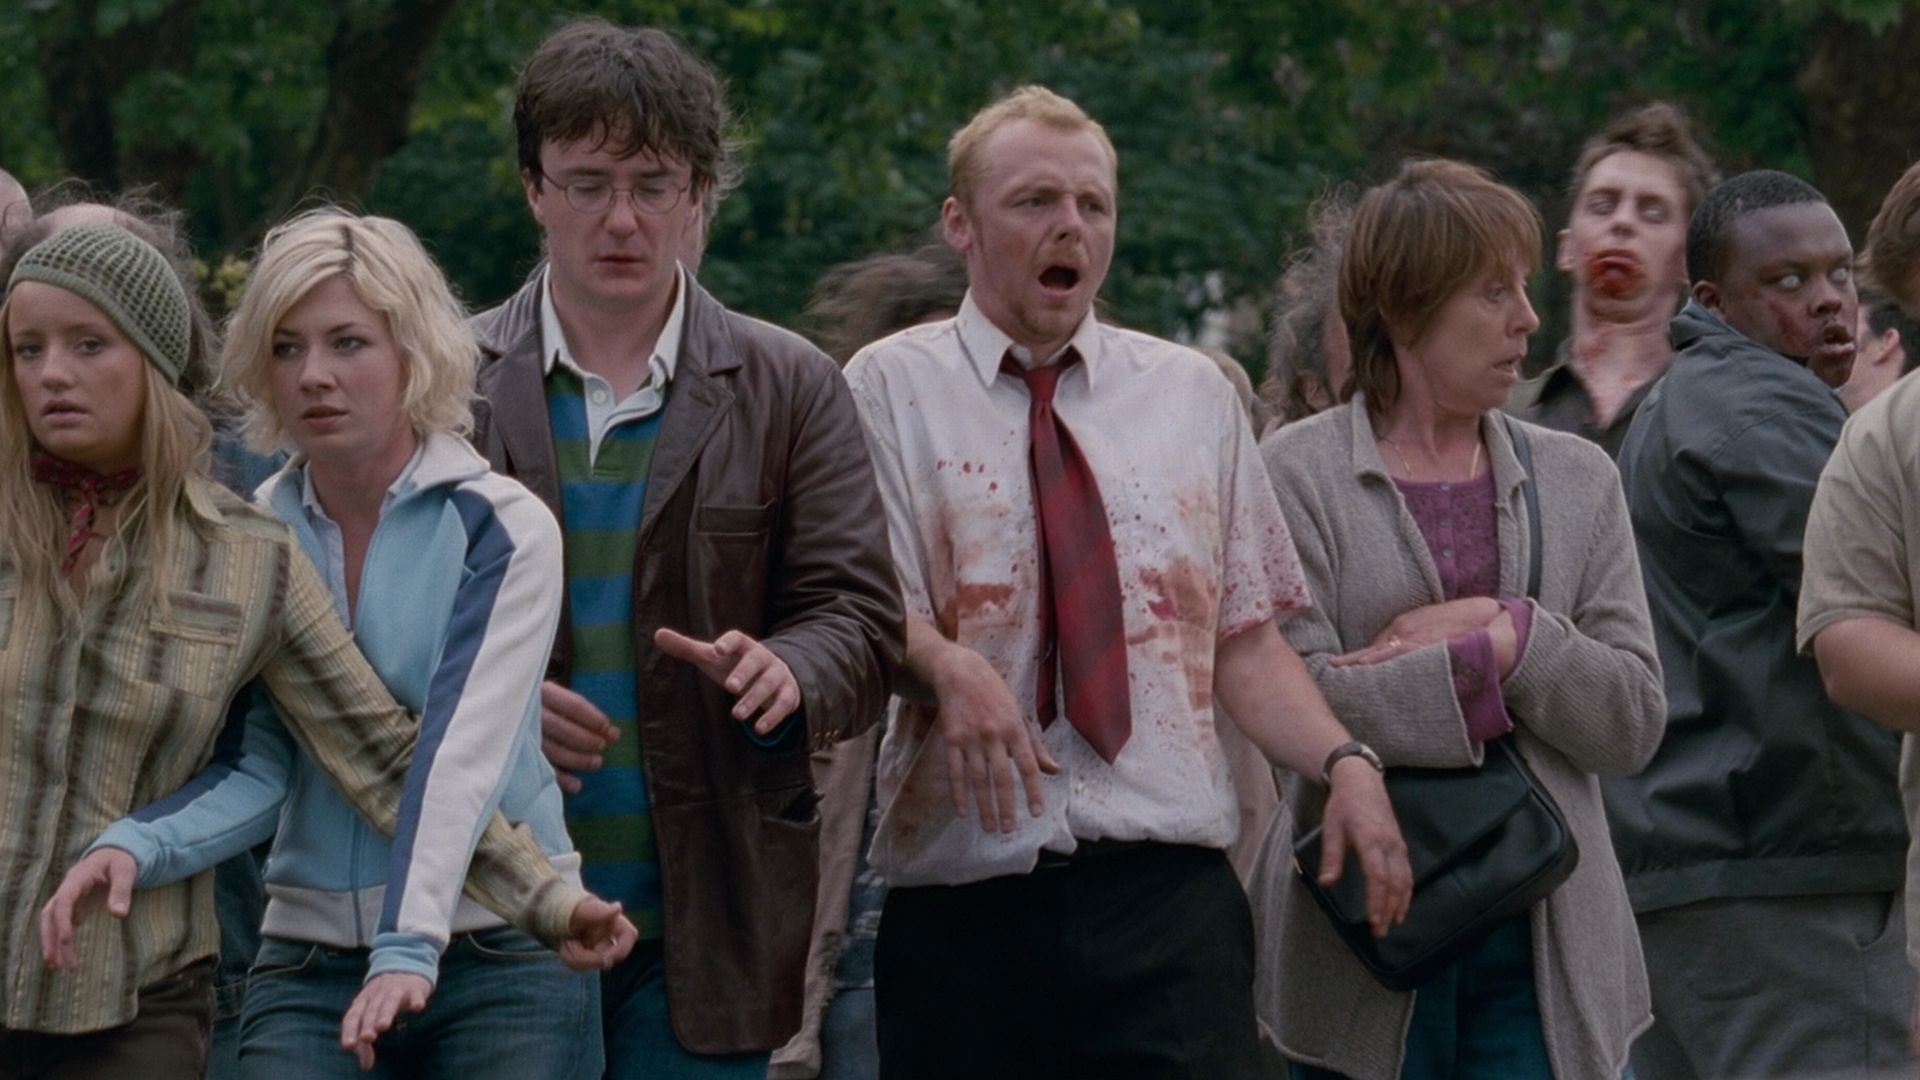 Lucy Davis, Kate Ashfield and Simon Pegg (in the centre with the red tie) in Edgar Wright's Shaun of the Dead (2004)